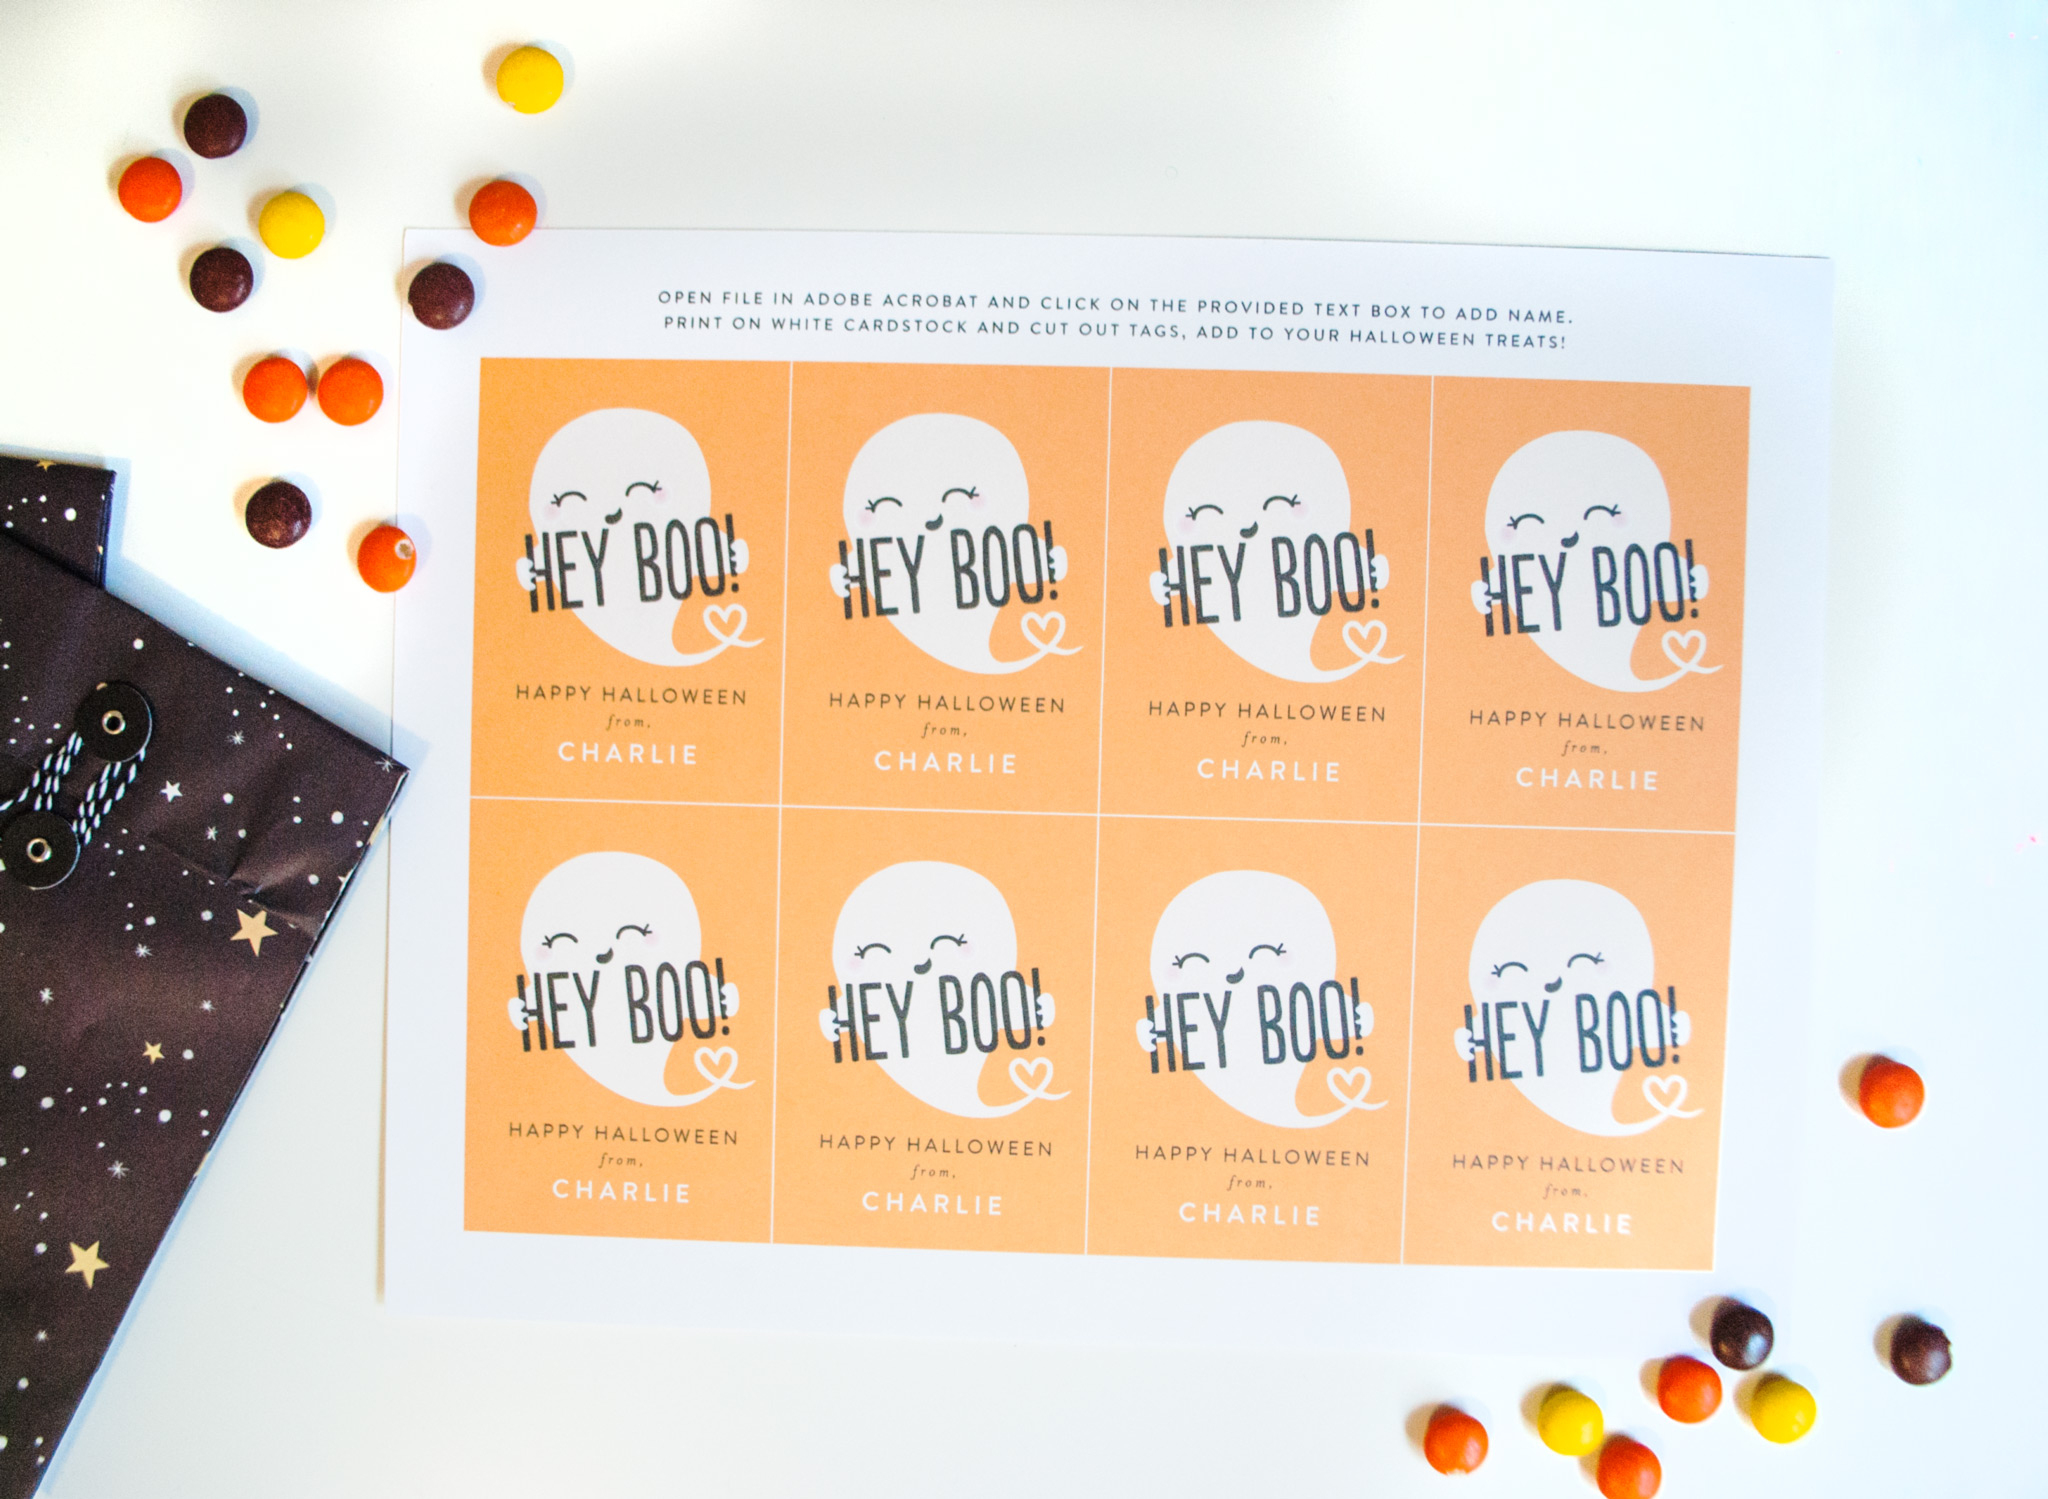 Hey, Boo! Get Your Free Printable Halloween Treat Tags Here - Free Printable Halloween Tags